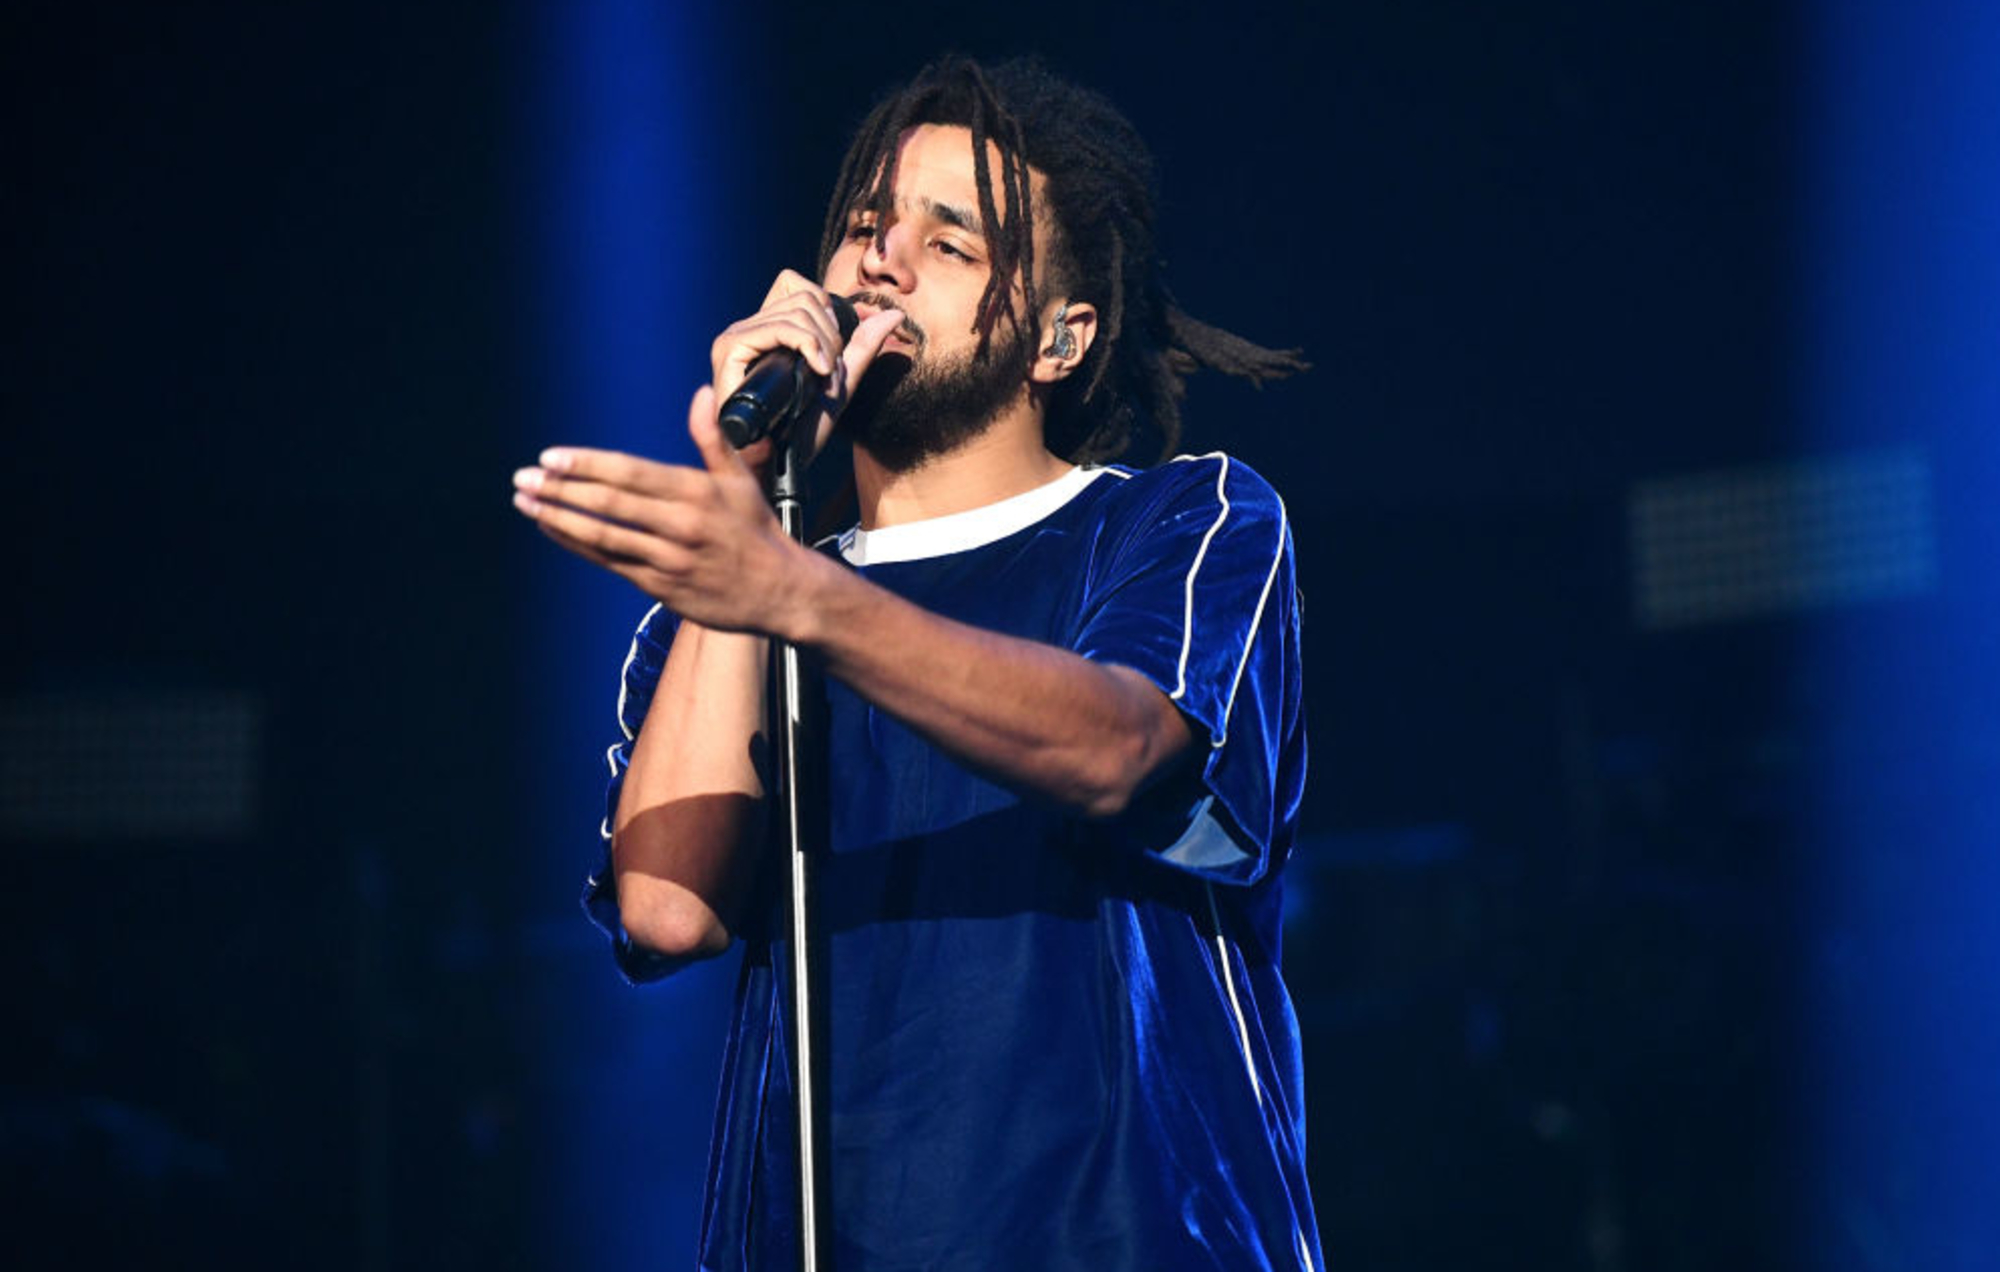 J. Cole teases three new projects and implies he might retire afterwards